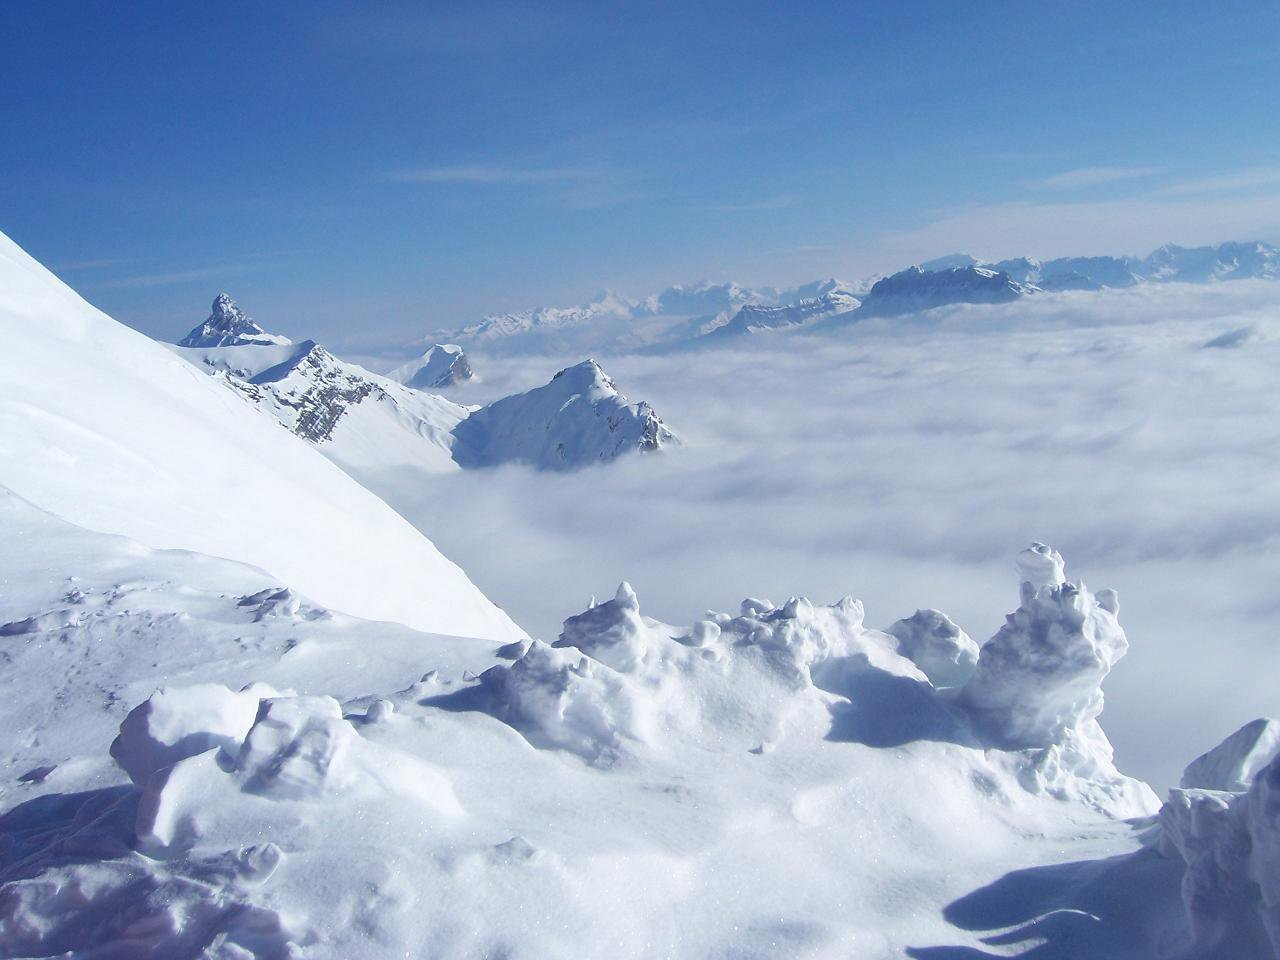 amazing view above the clouds